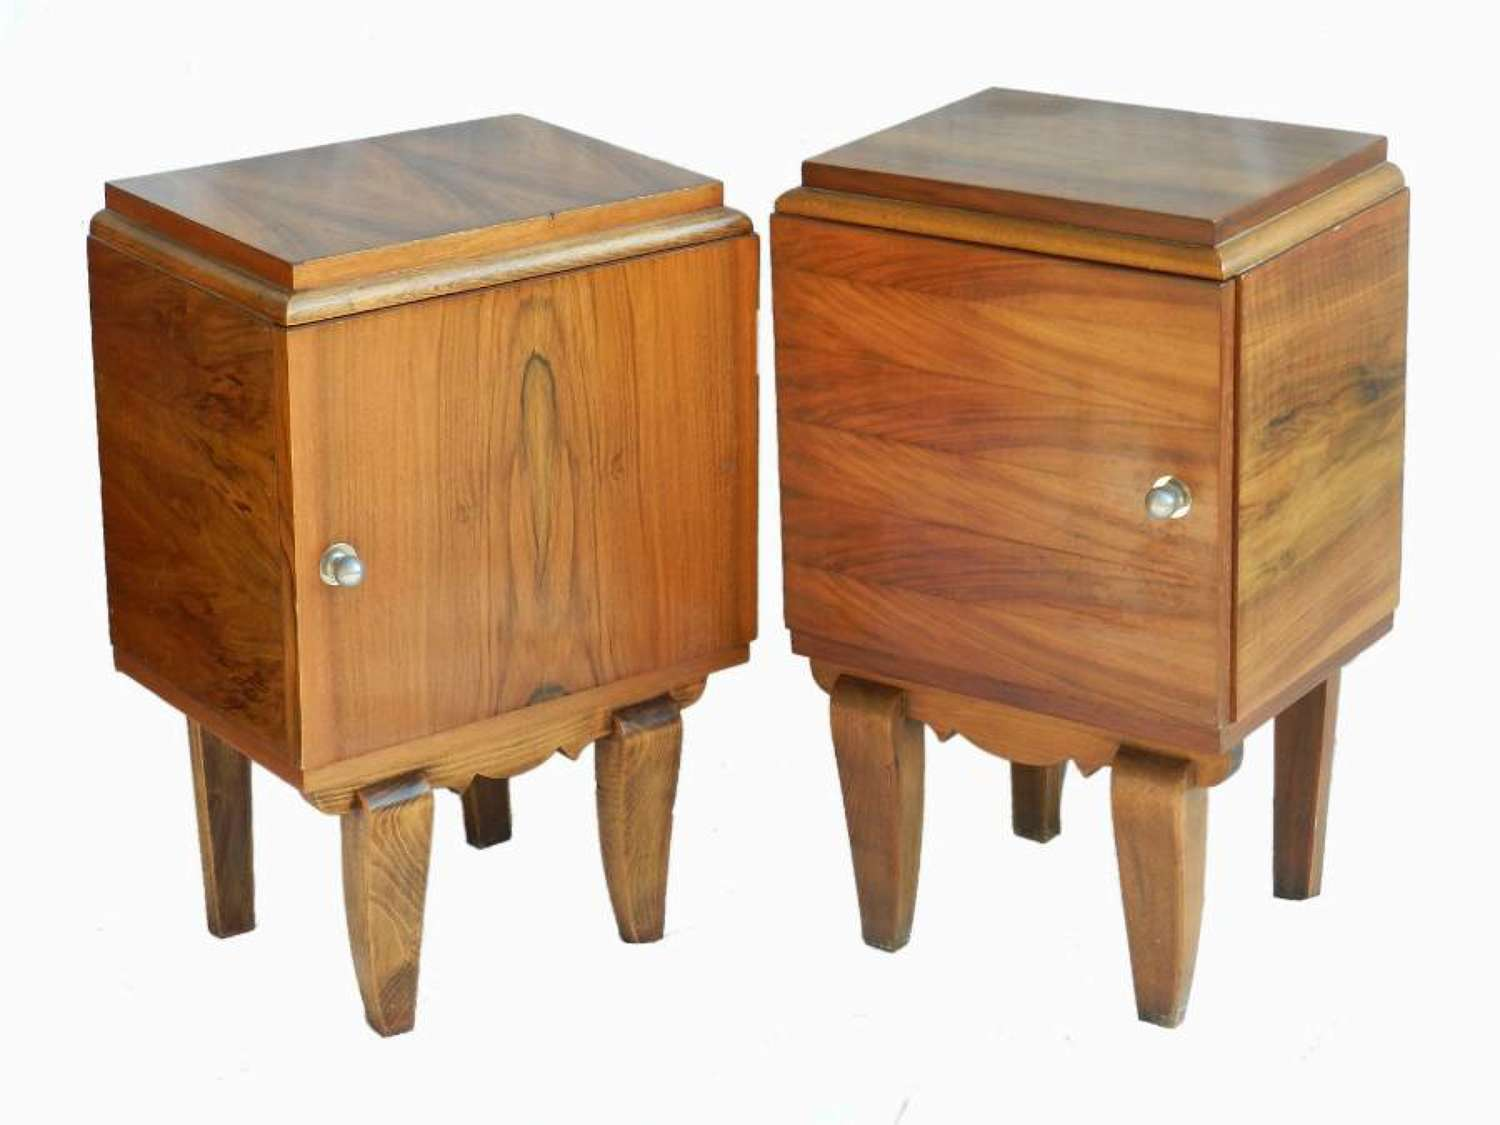 Two Art Deco Mid-Century Side Cabinets Pair of Nightstands Bedside Tables Walnut